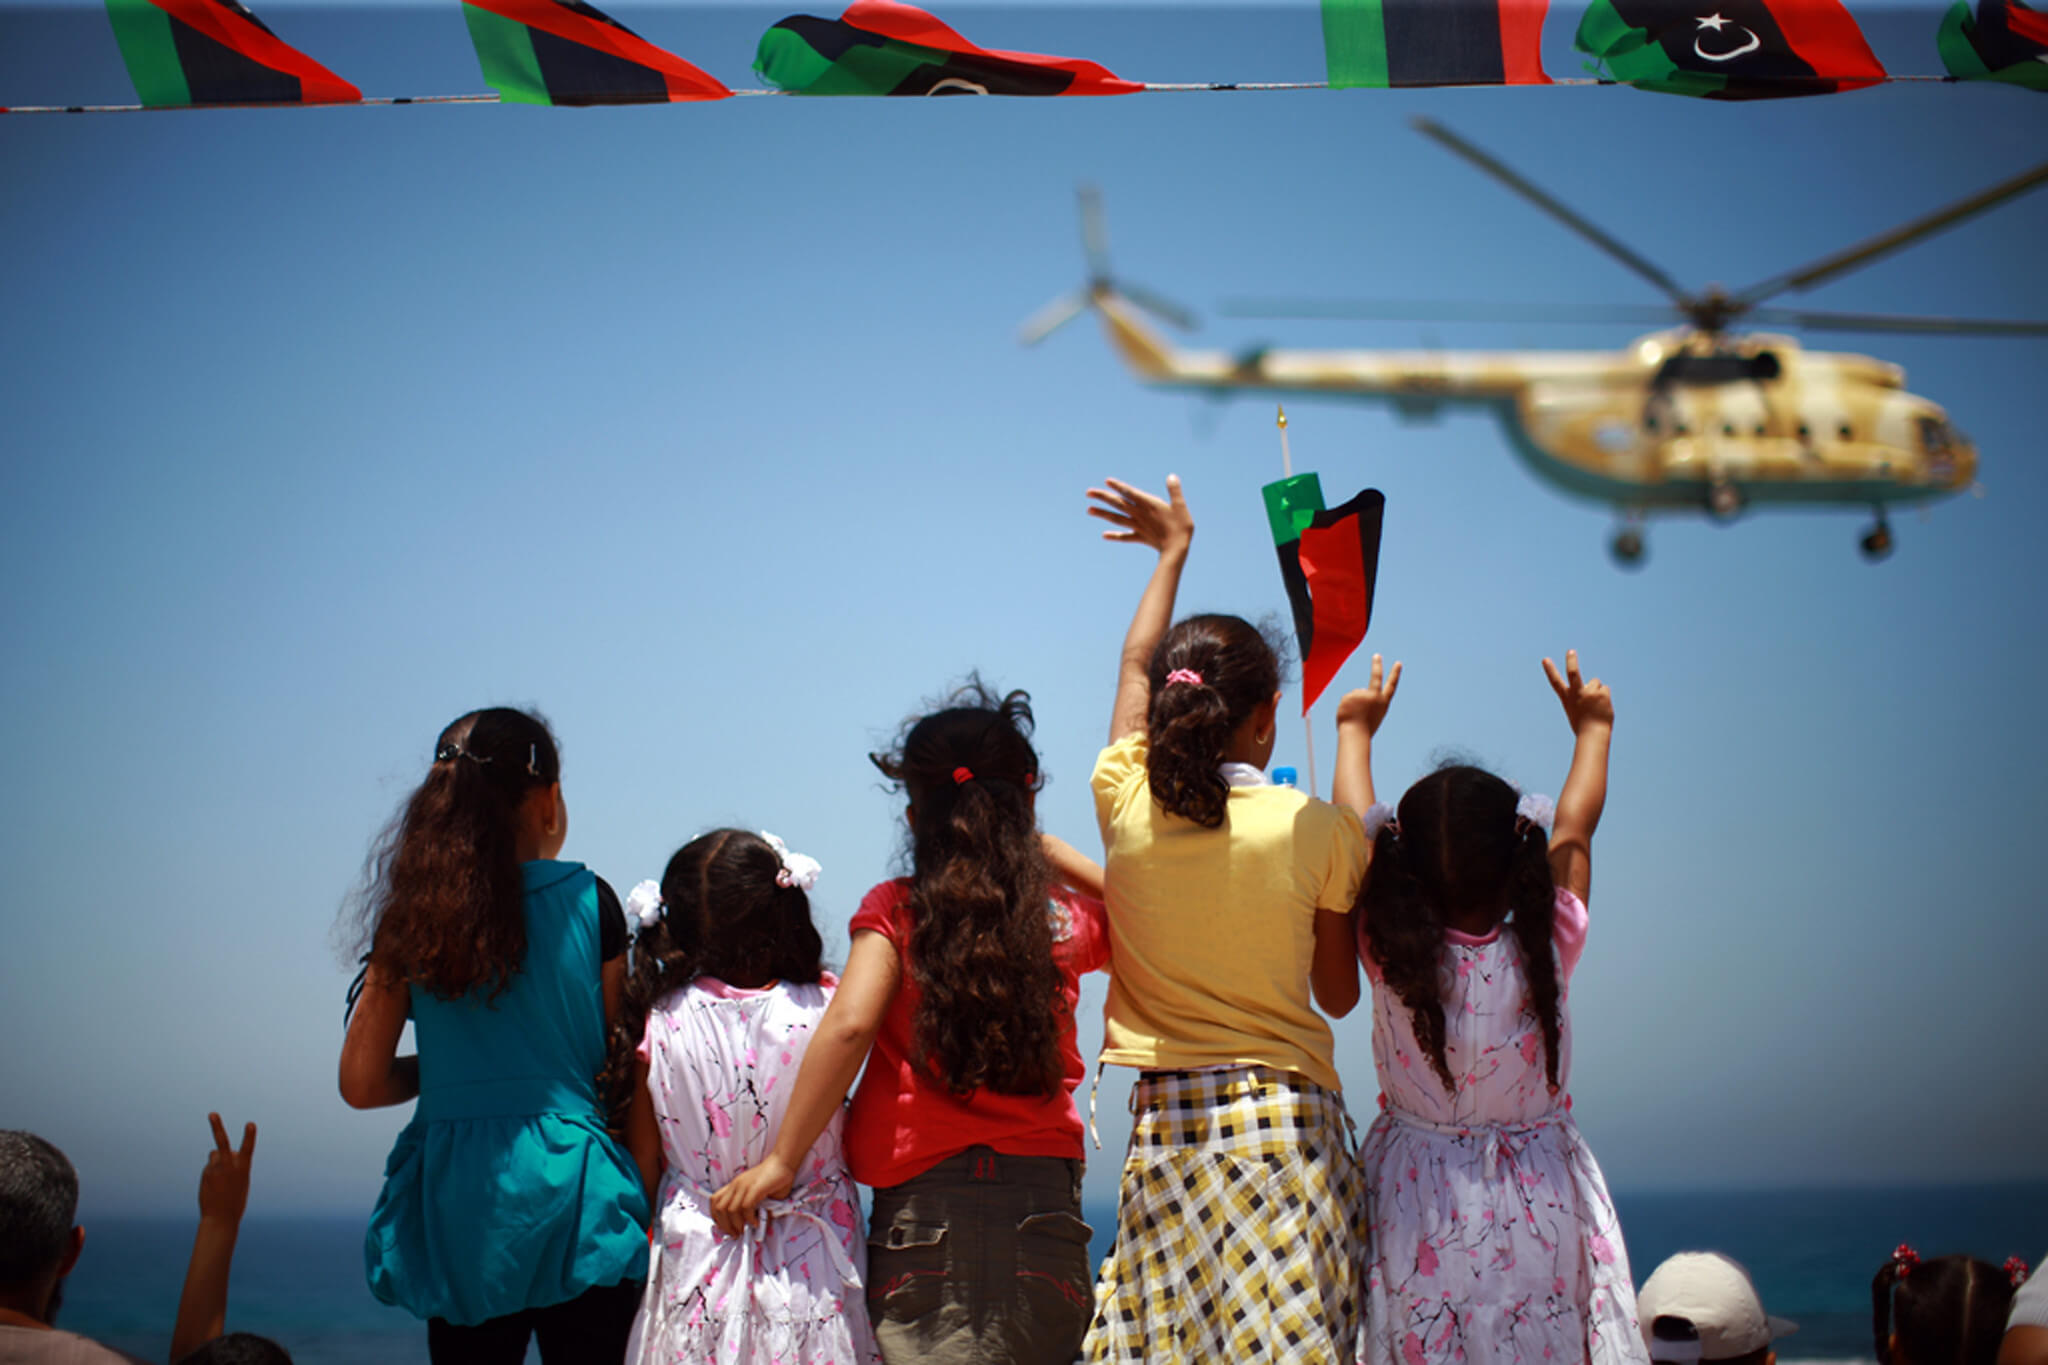 Girls wave and flash victory signs at a passing helicopter during a military parade in the western city of Zawiya, Libya, held to mark the anniversary of an uprising last year that cleared the way for the anti-Qadhafi forces' march on Tripoli.